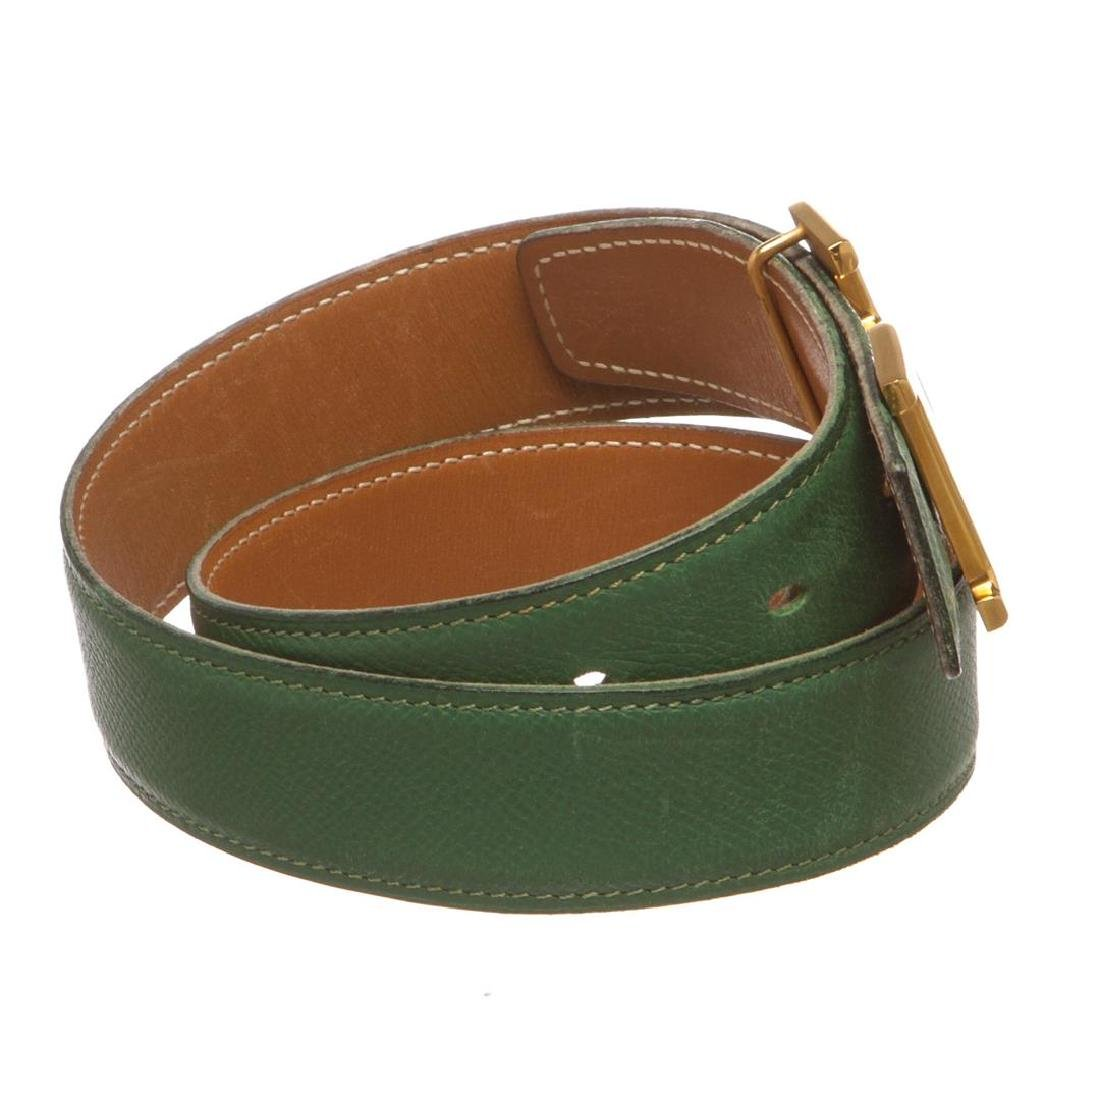 Hermes Green Leather Reversible Constance H Belt 60 - 3